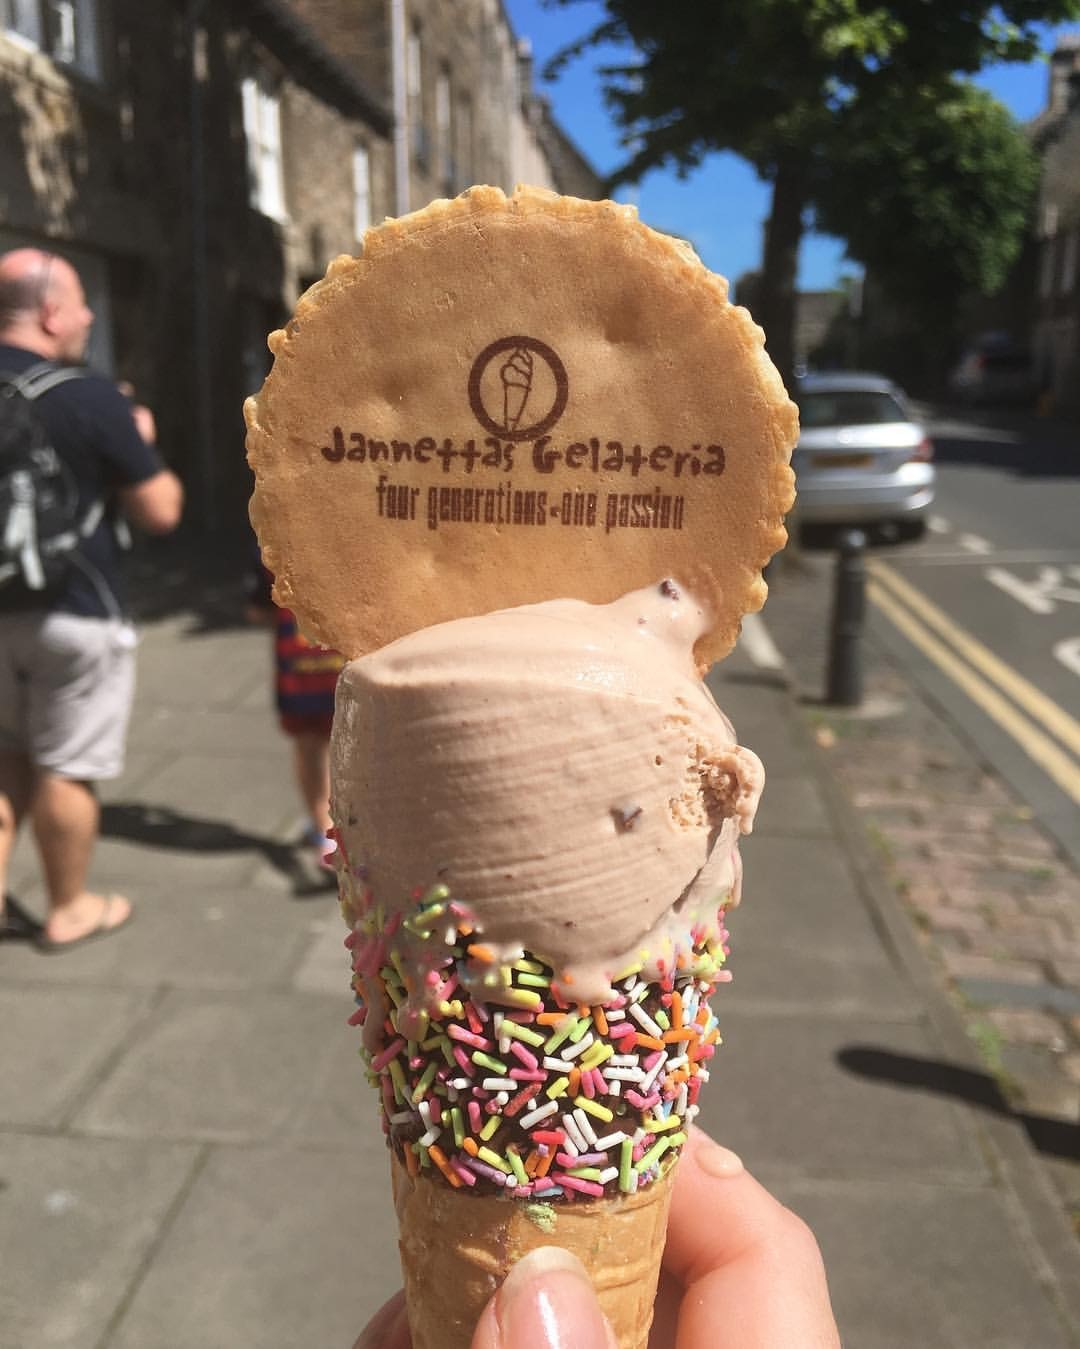 Janettas ice cream, St Andrews